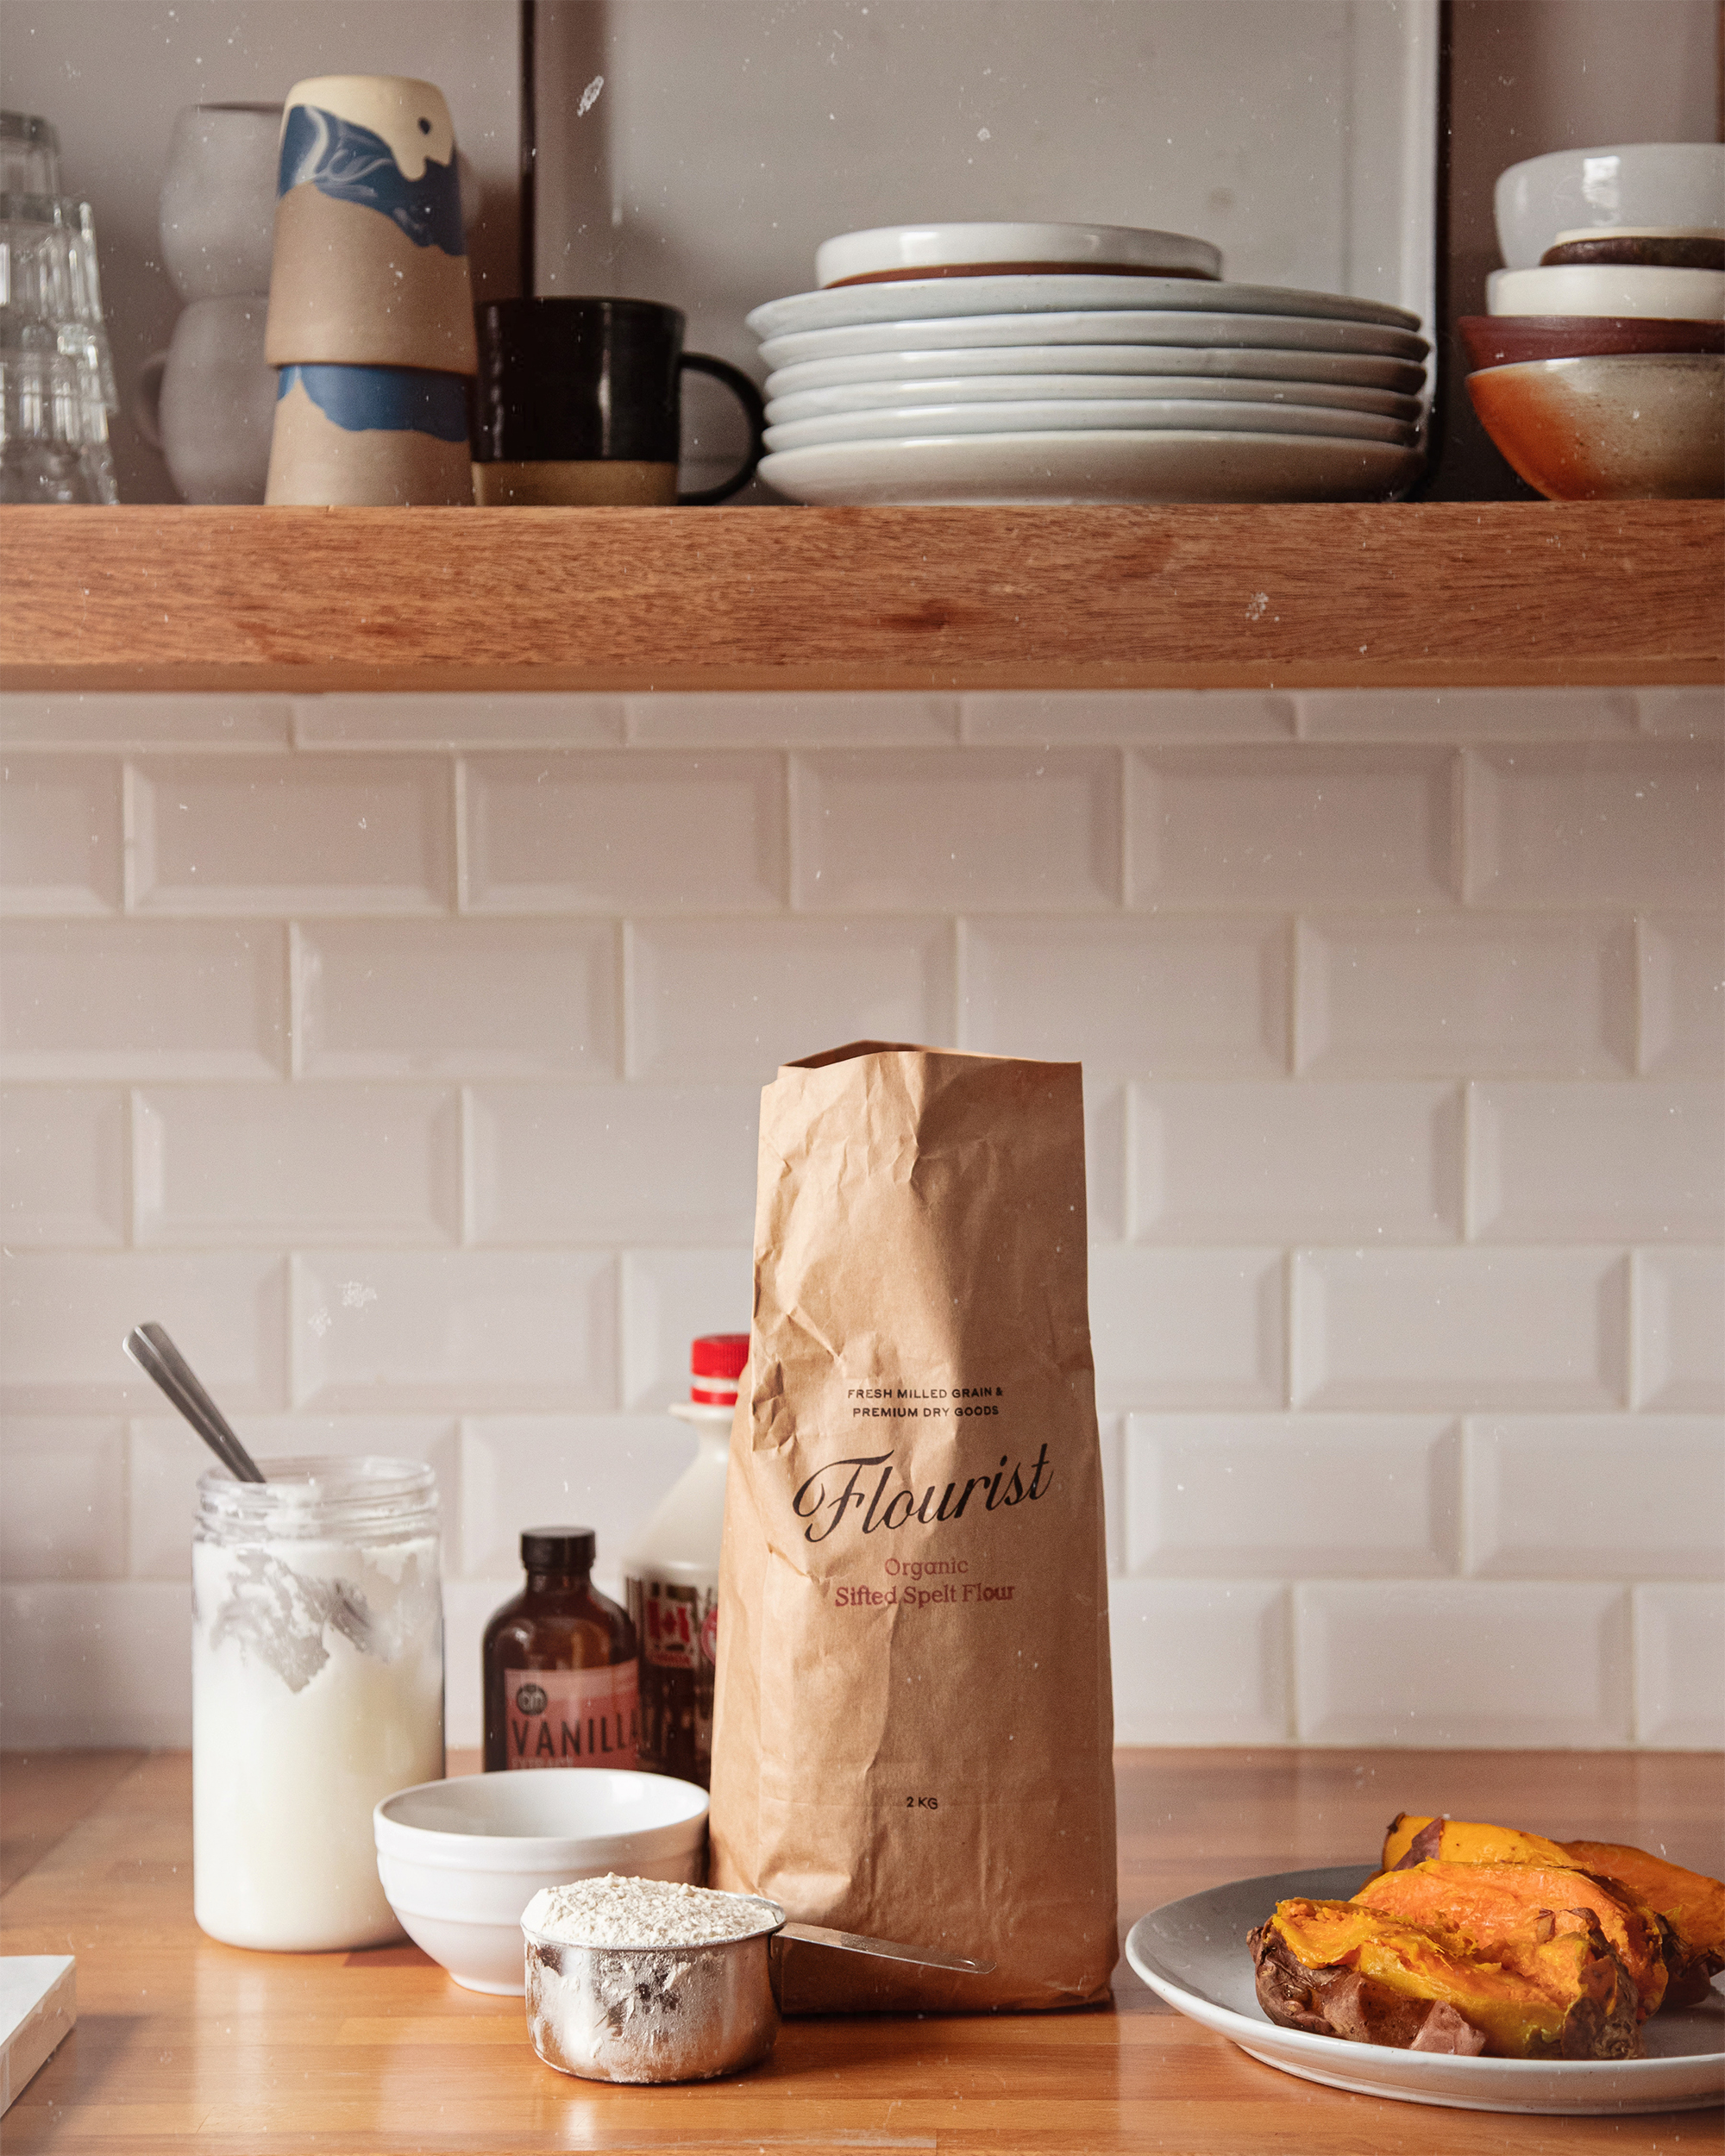 A head on shot of muffin ingredients on a wood butcher block counter with open shelving and white subway tile in the background.